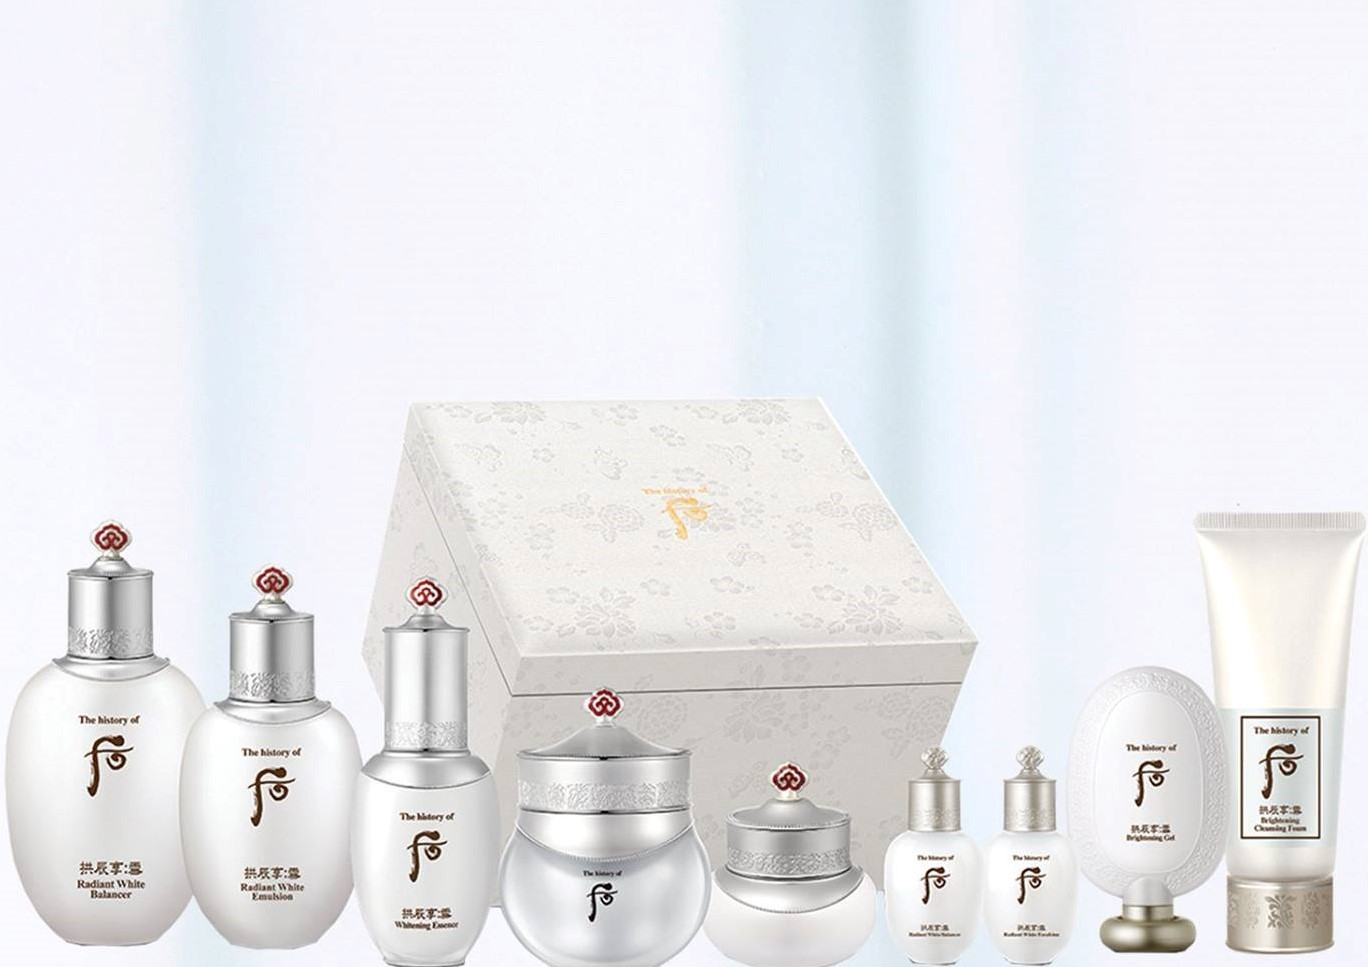 The History of Whoo Seol Full Set